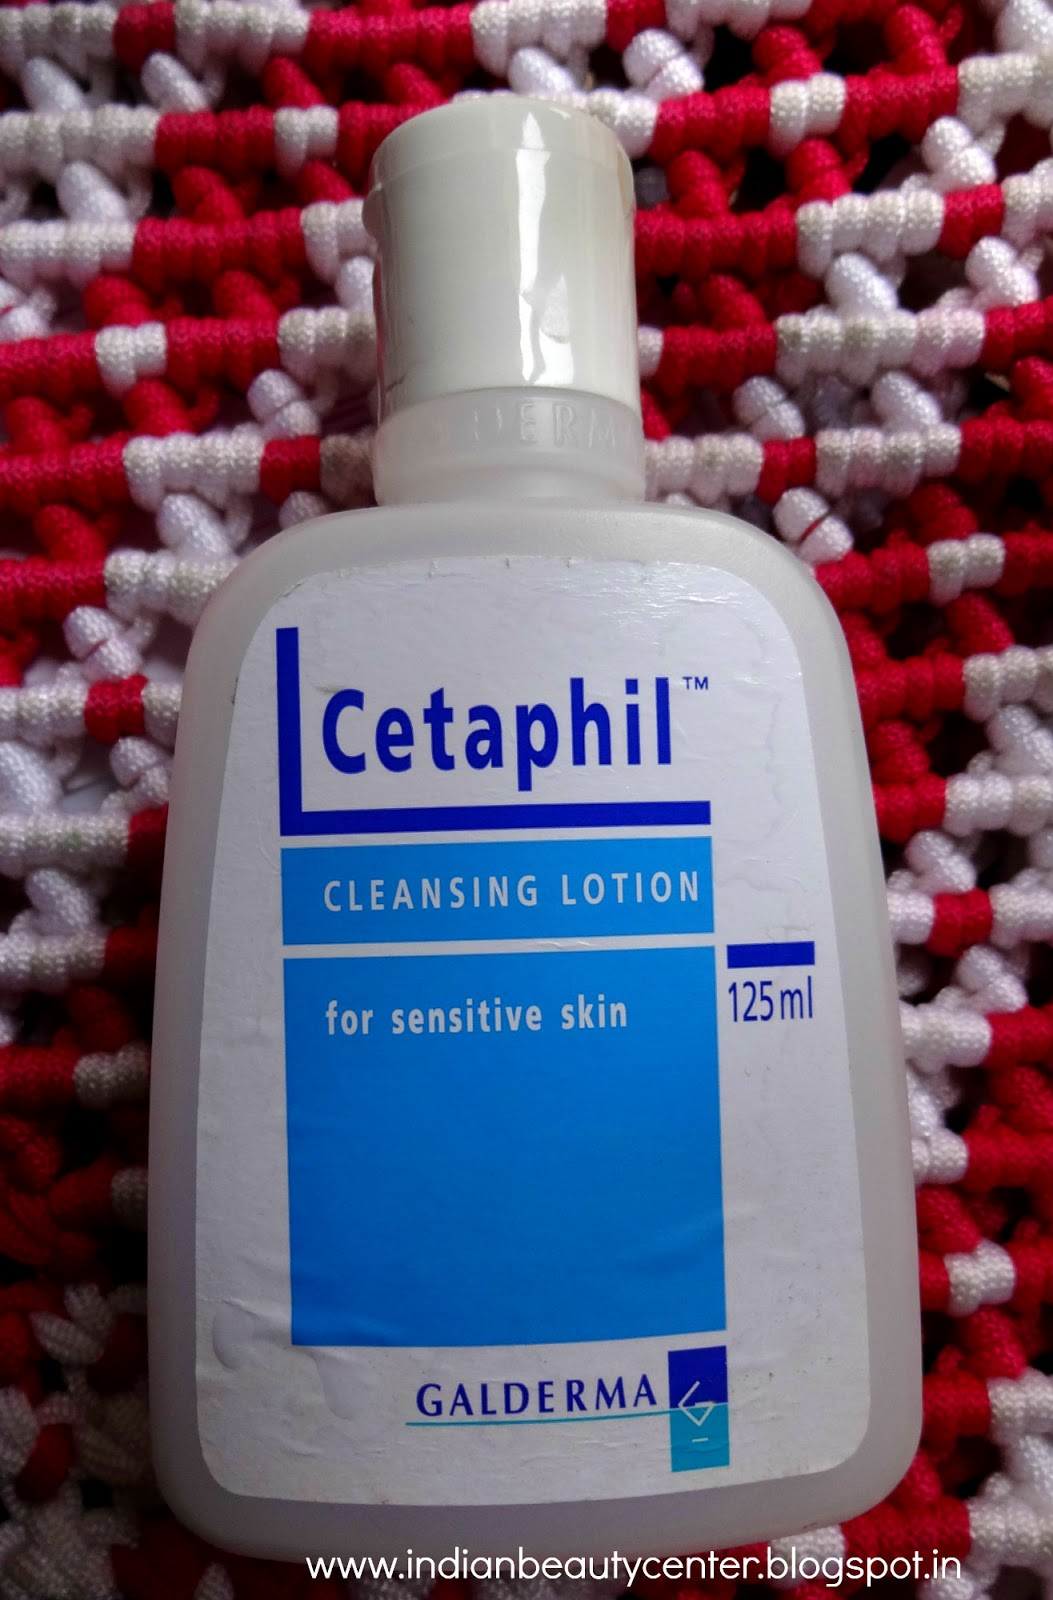 http://indianbeautycenter.blogspot.com/2012/07/cetaphil-cleansing-lotion-for-sensitive.html